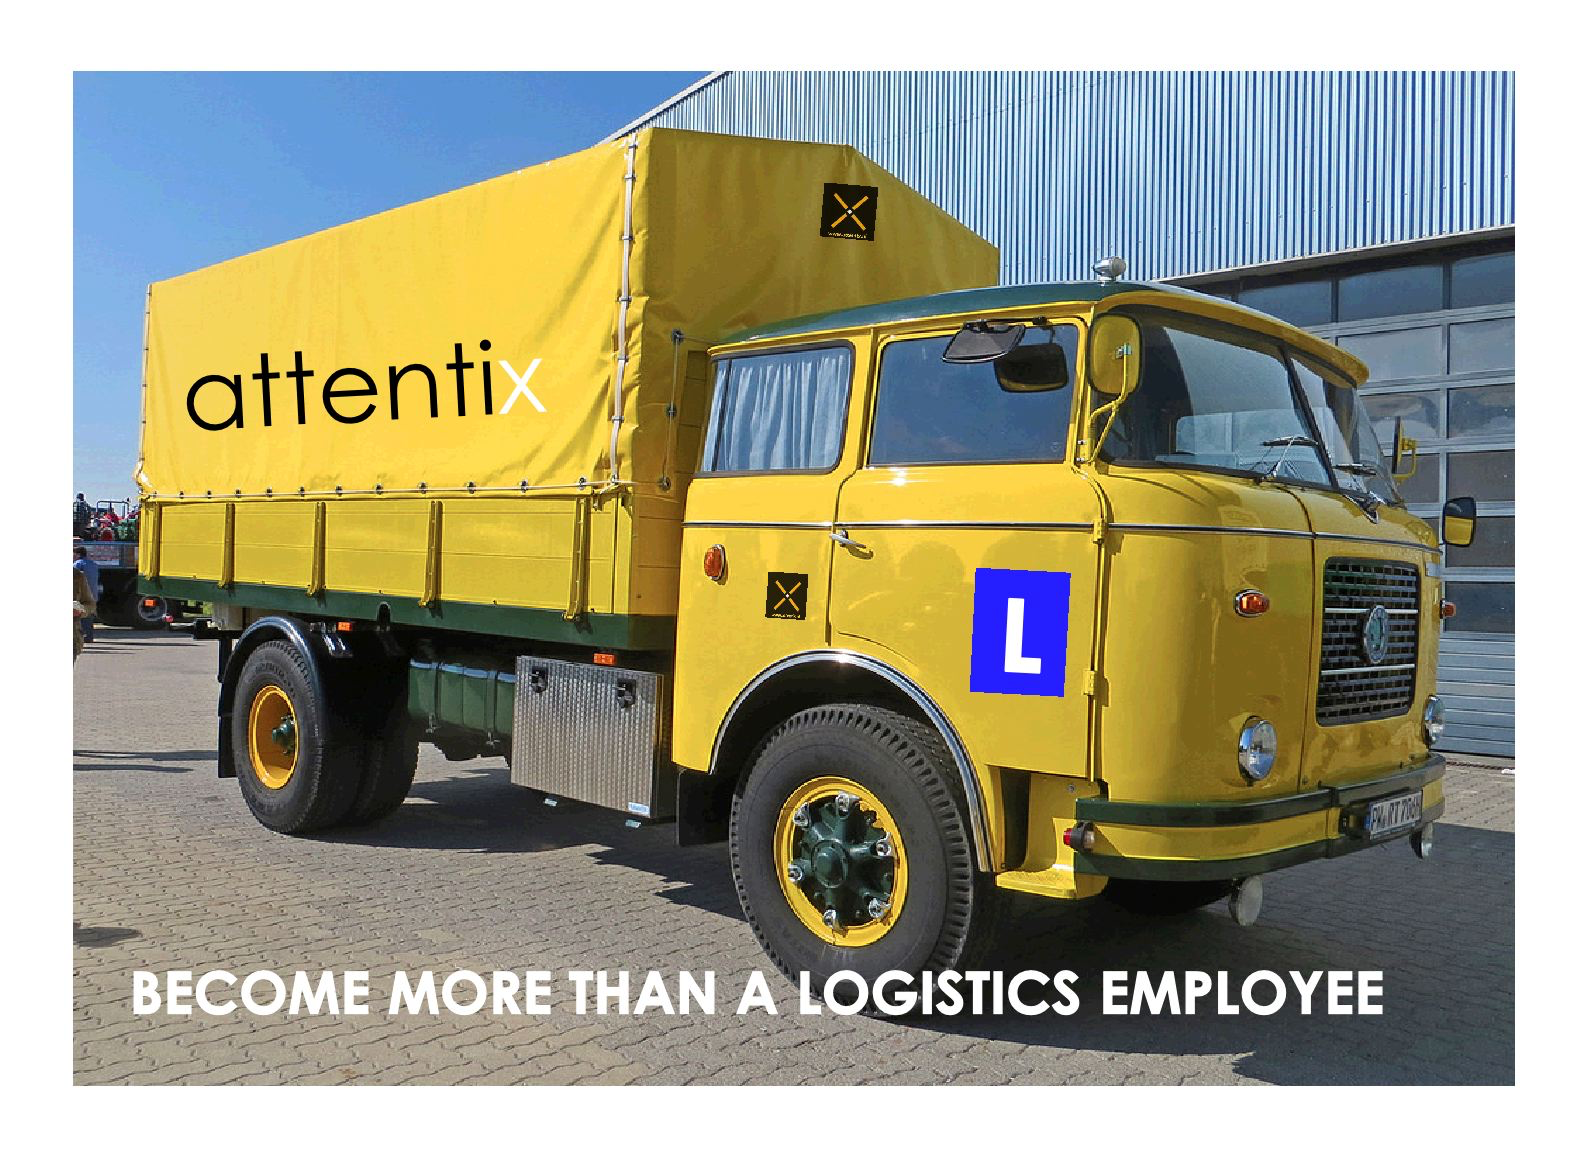 Recruiter logistiek Attentix